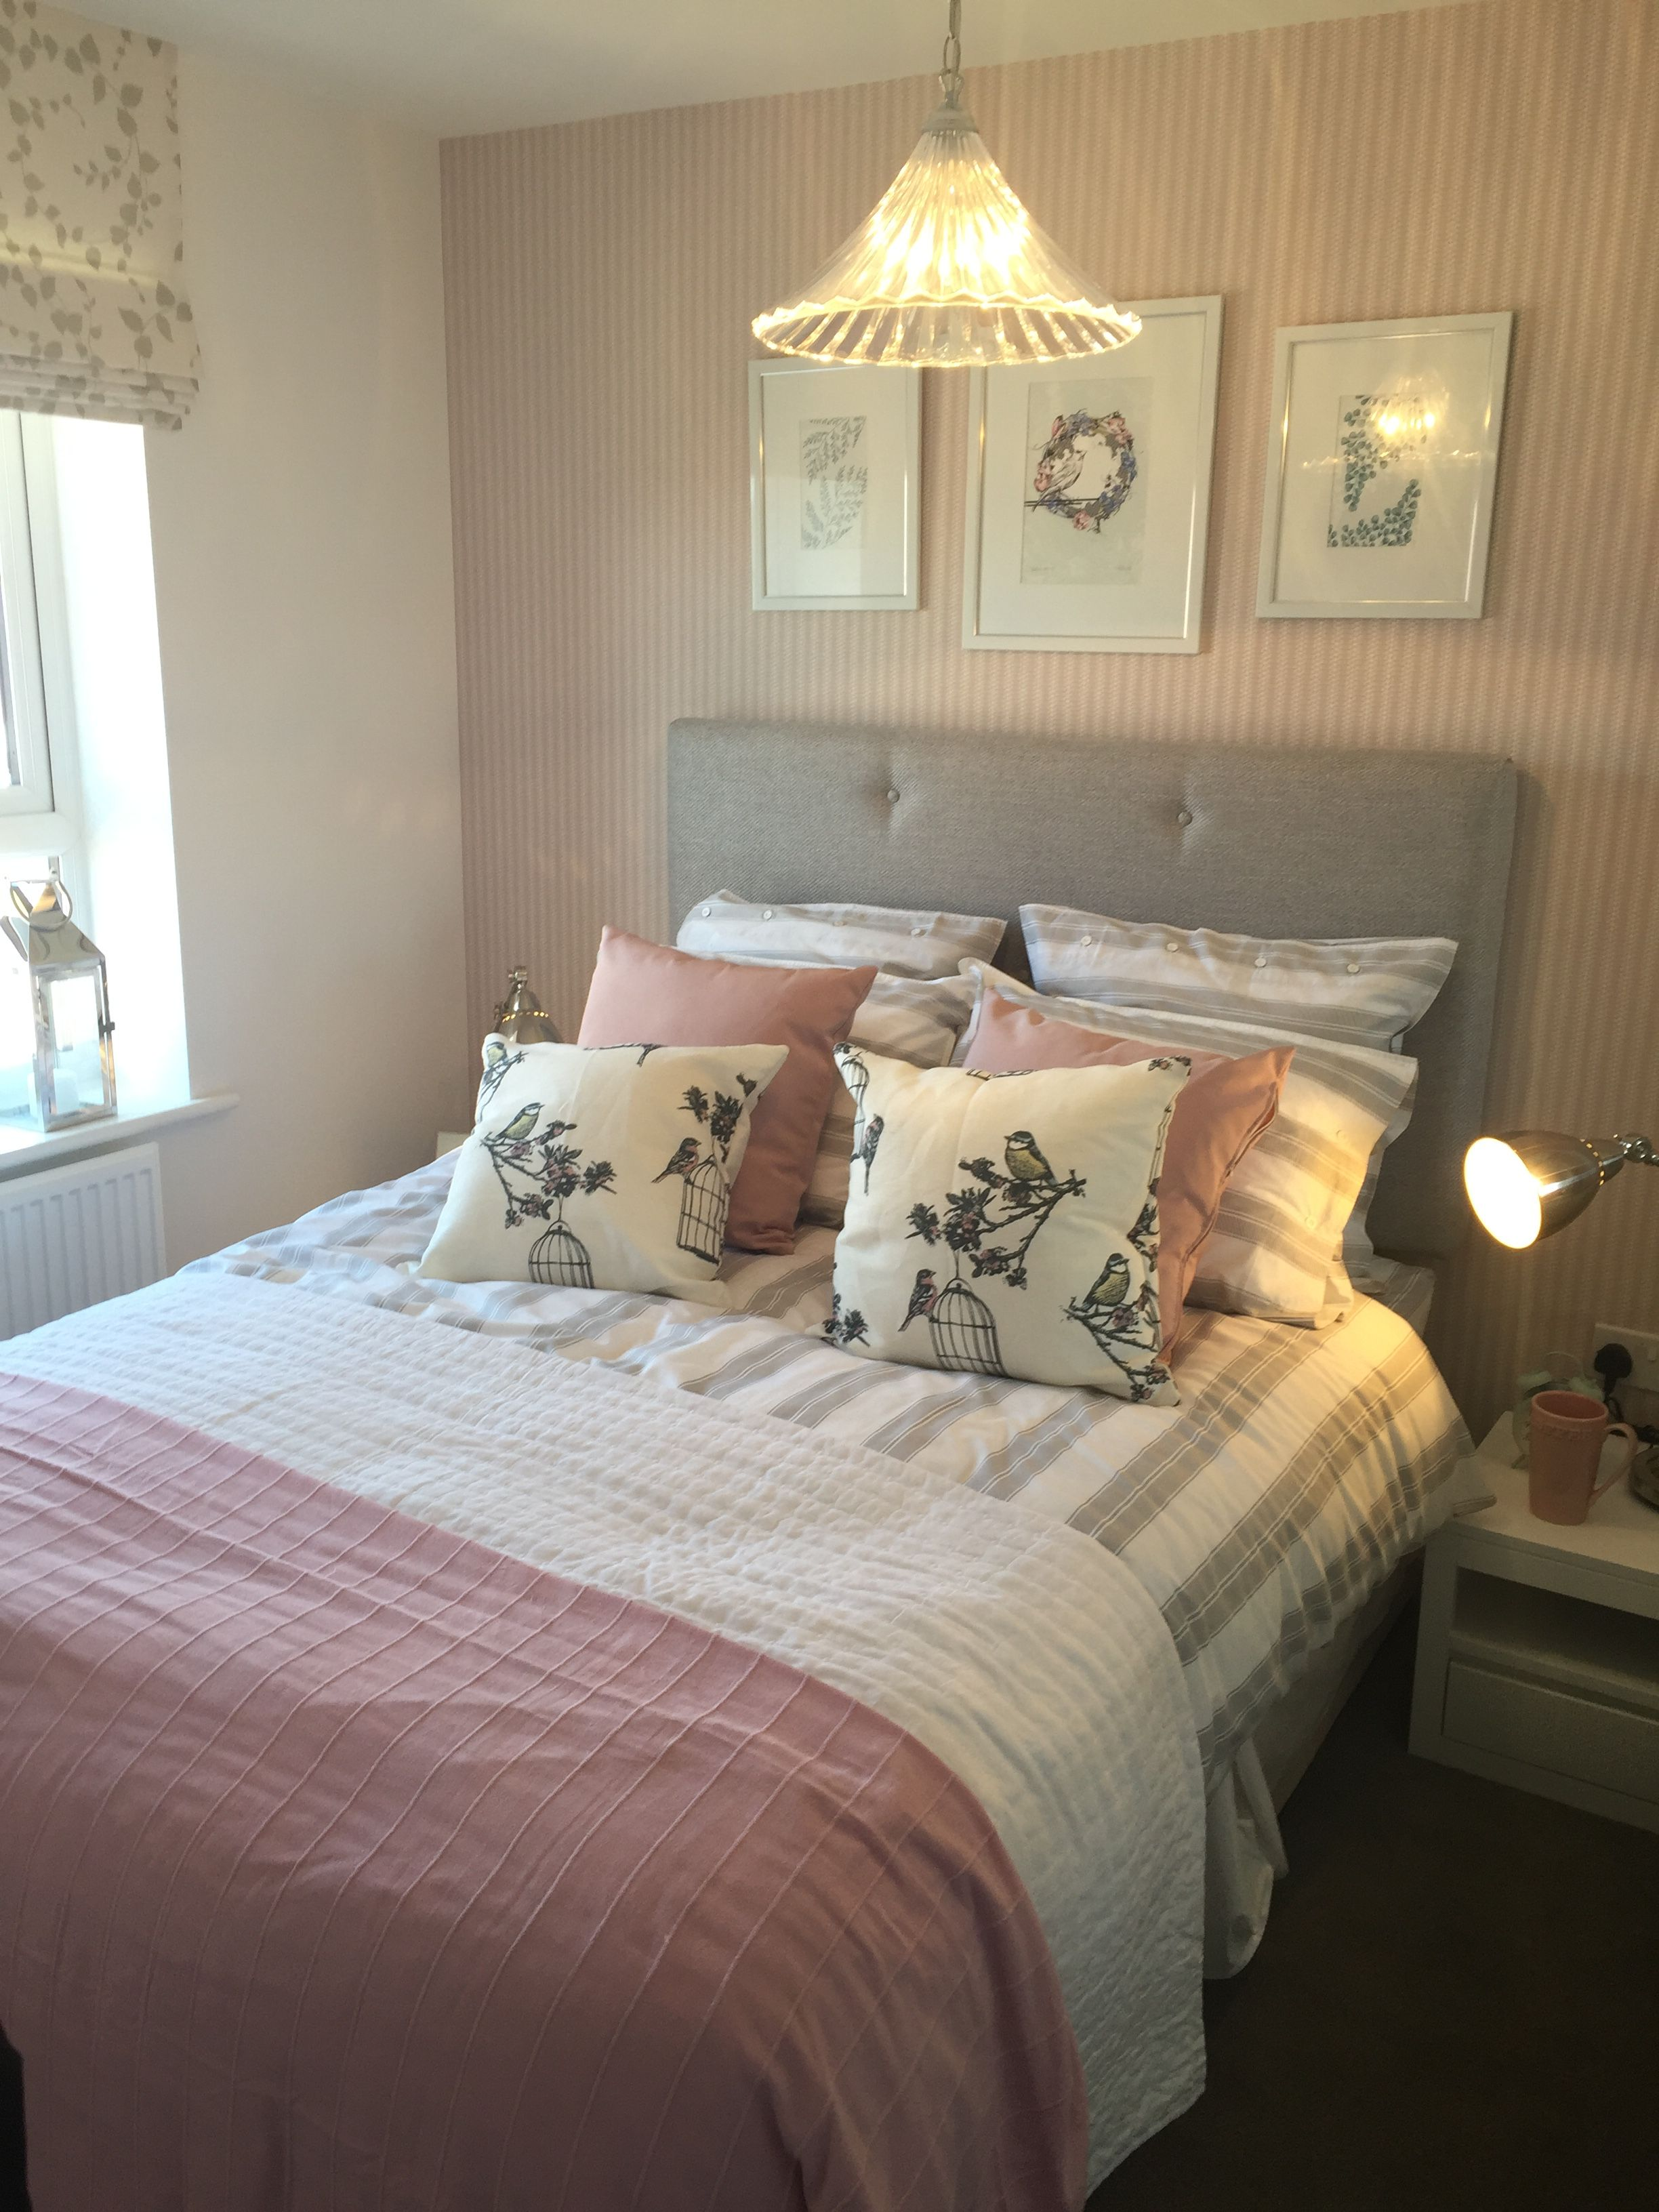 Pin by heidi walshaw on Bedroom Home decor, Design, Bedroom